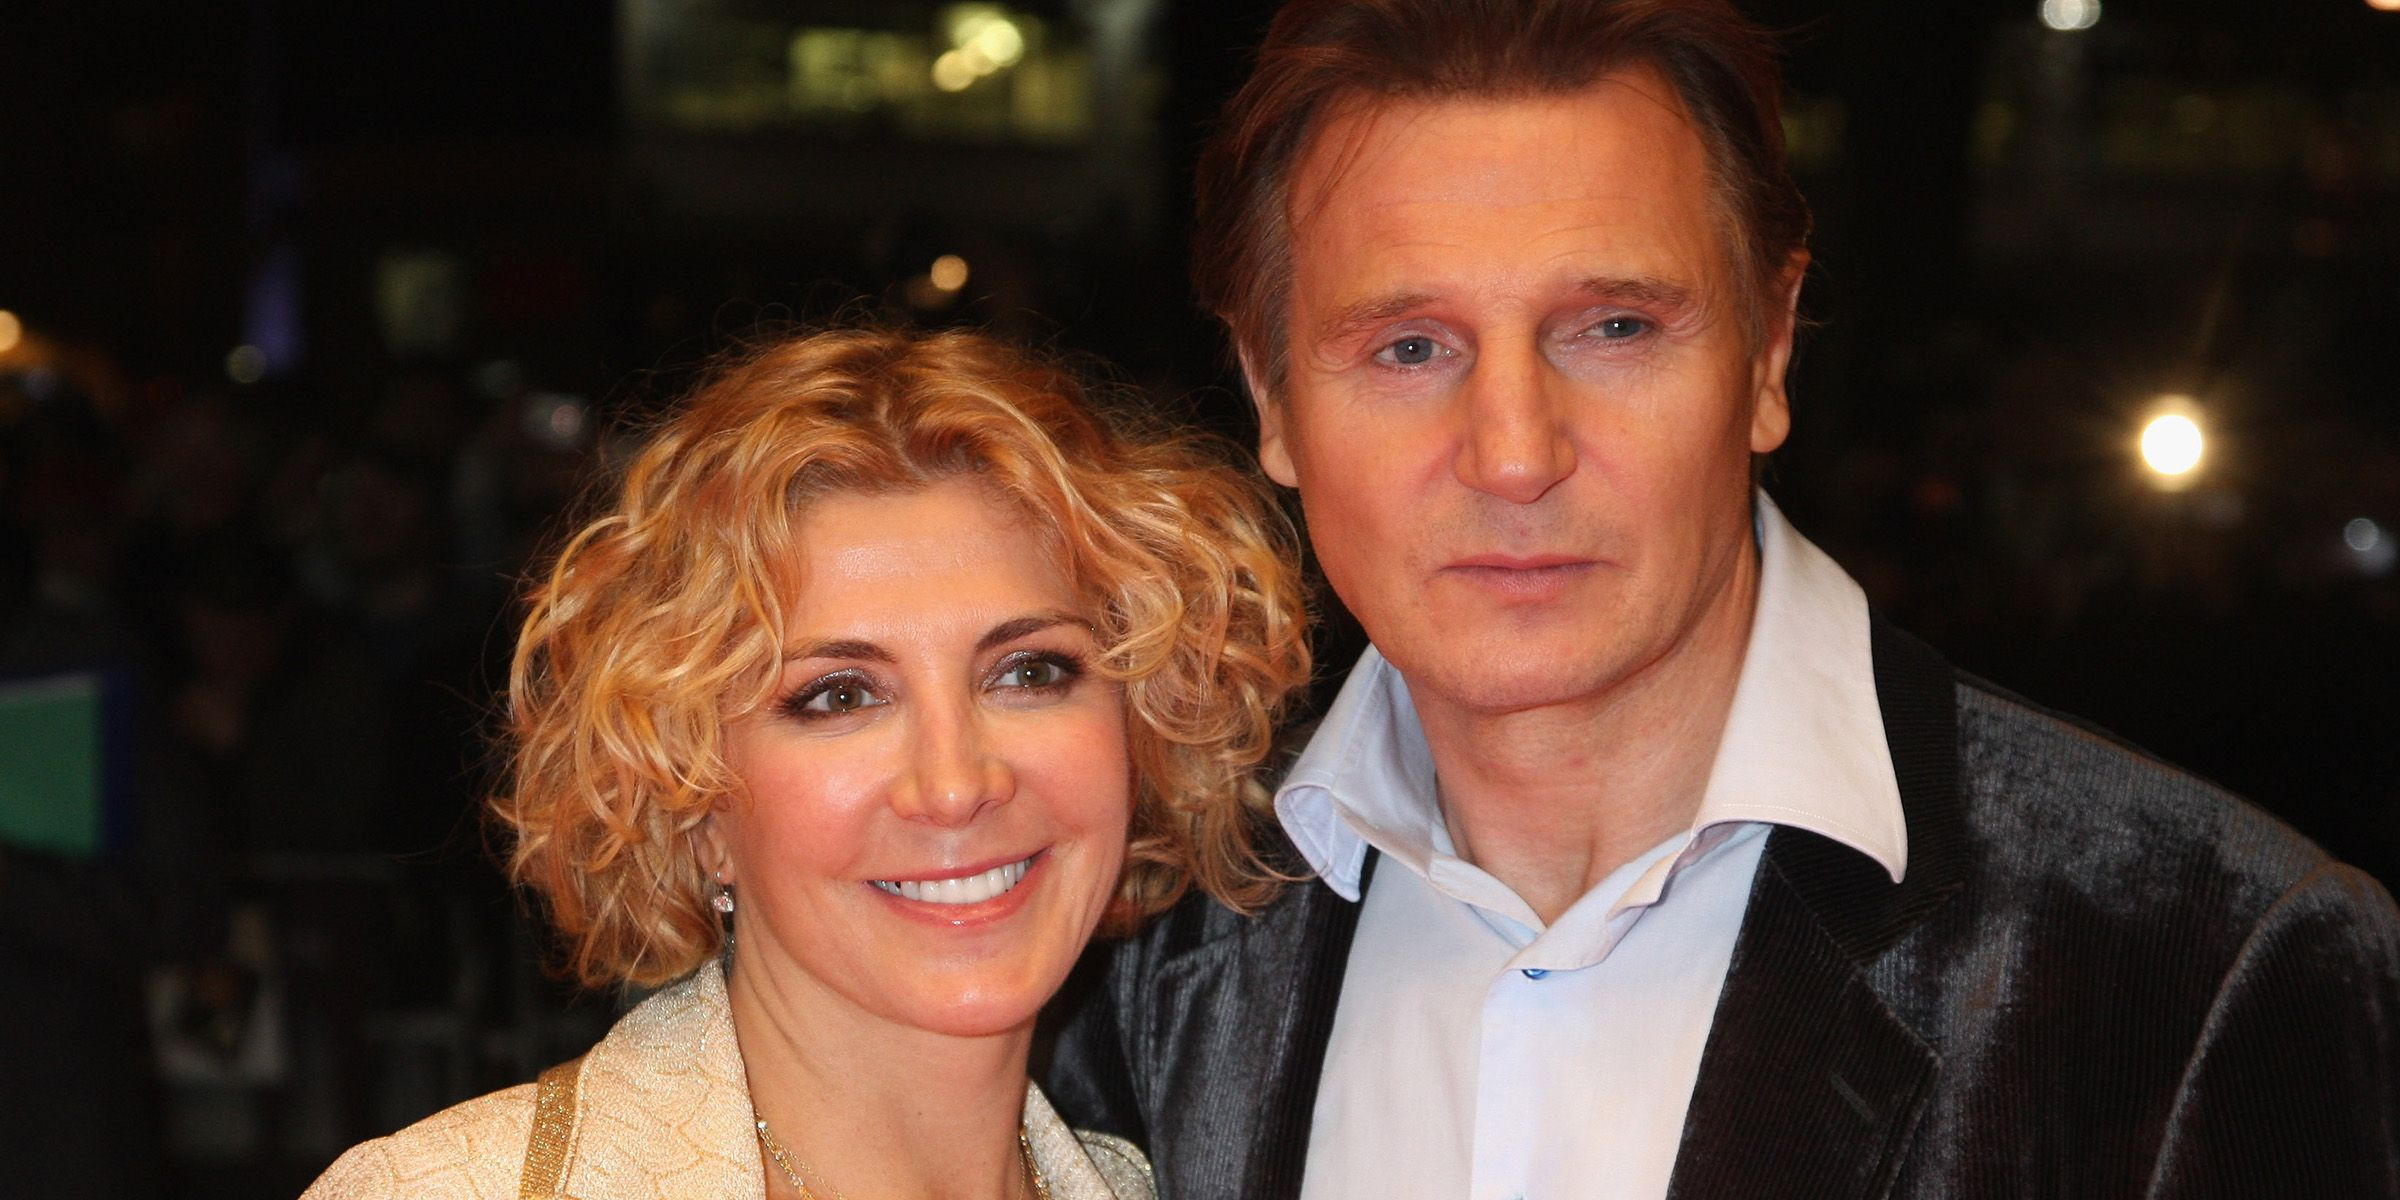 Natasha Richardson and Liam Neeson's Love Story is a Reminder to Cherish Your Spouse